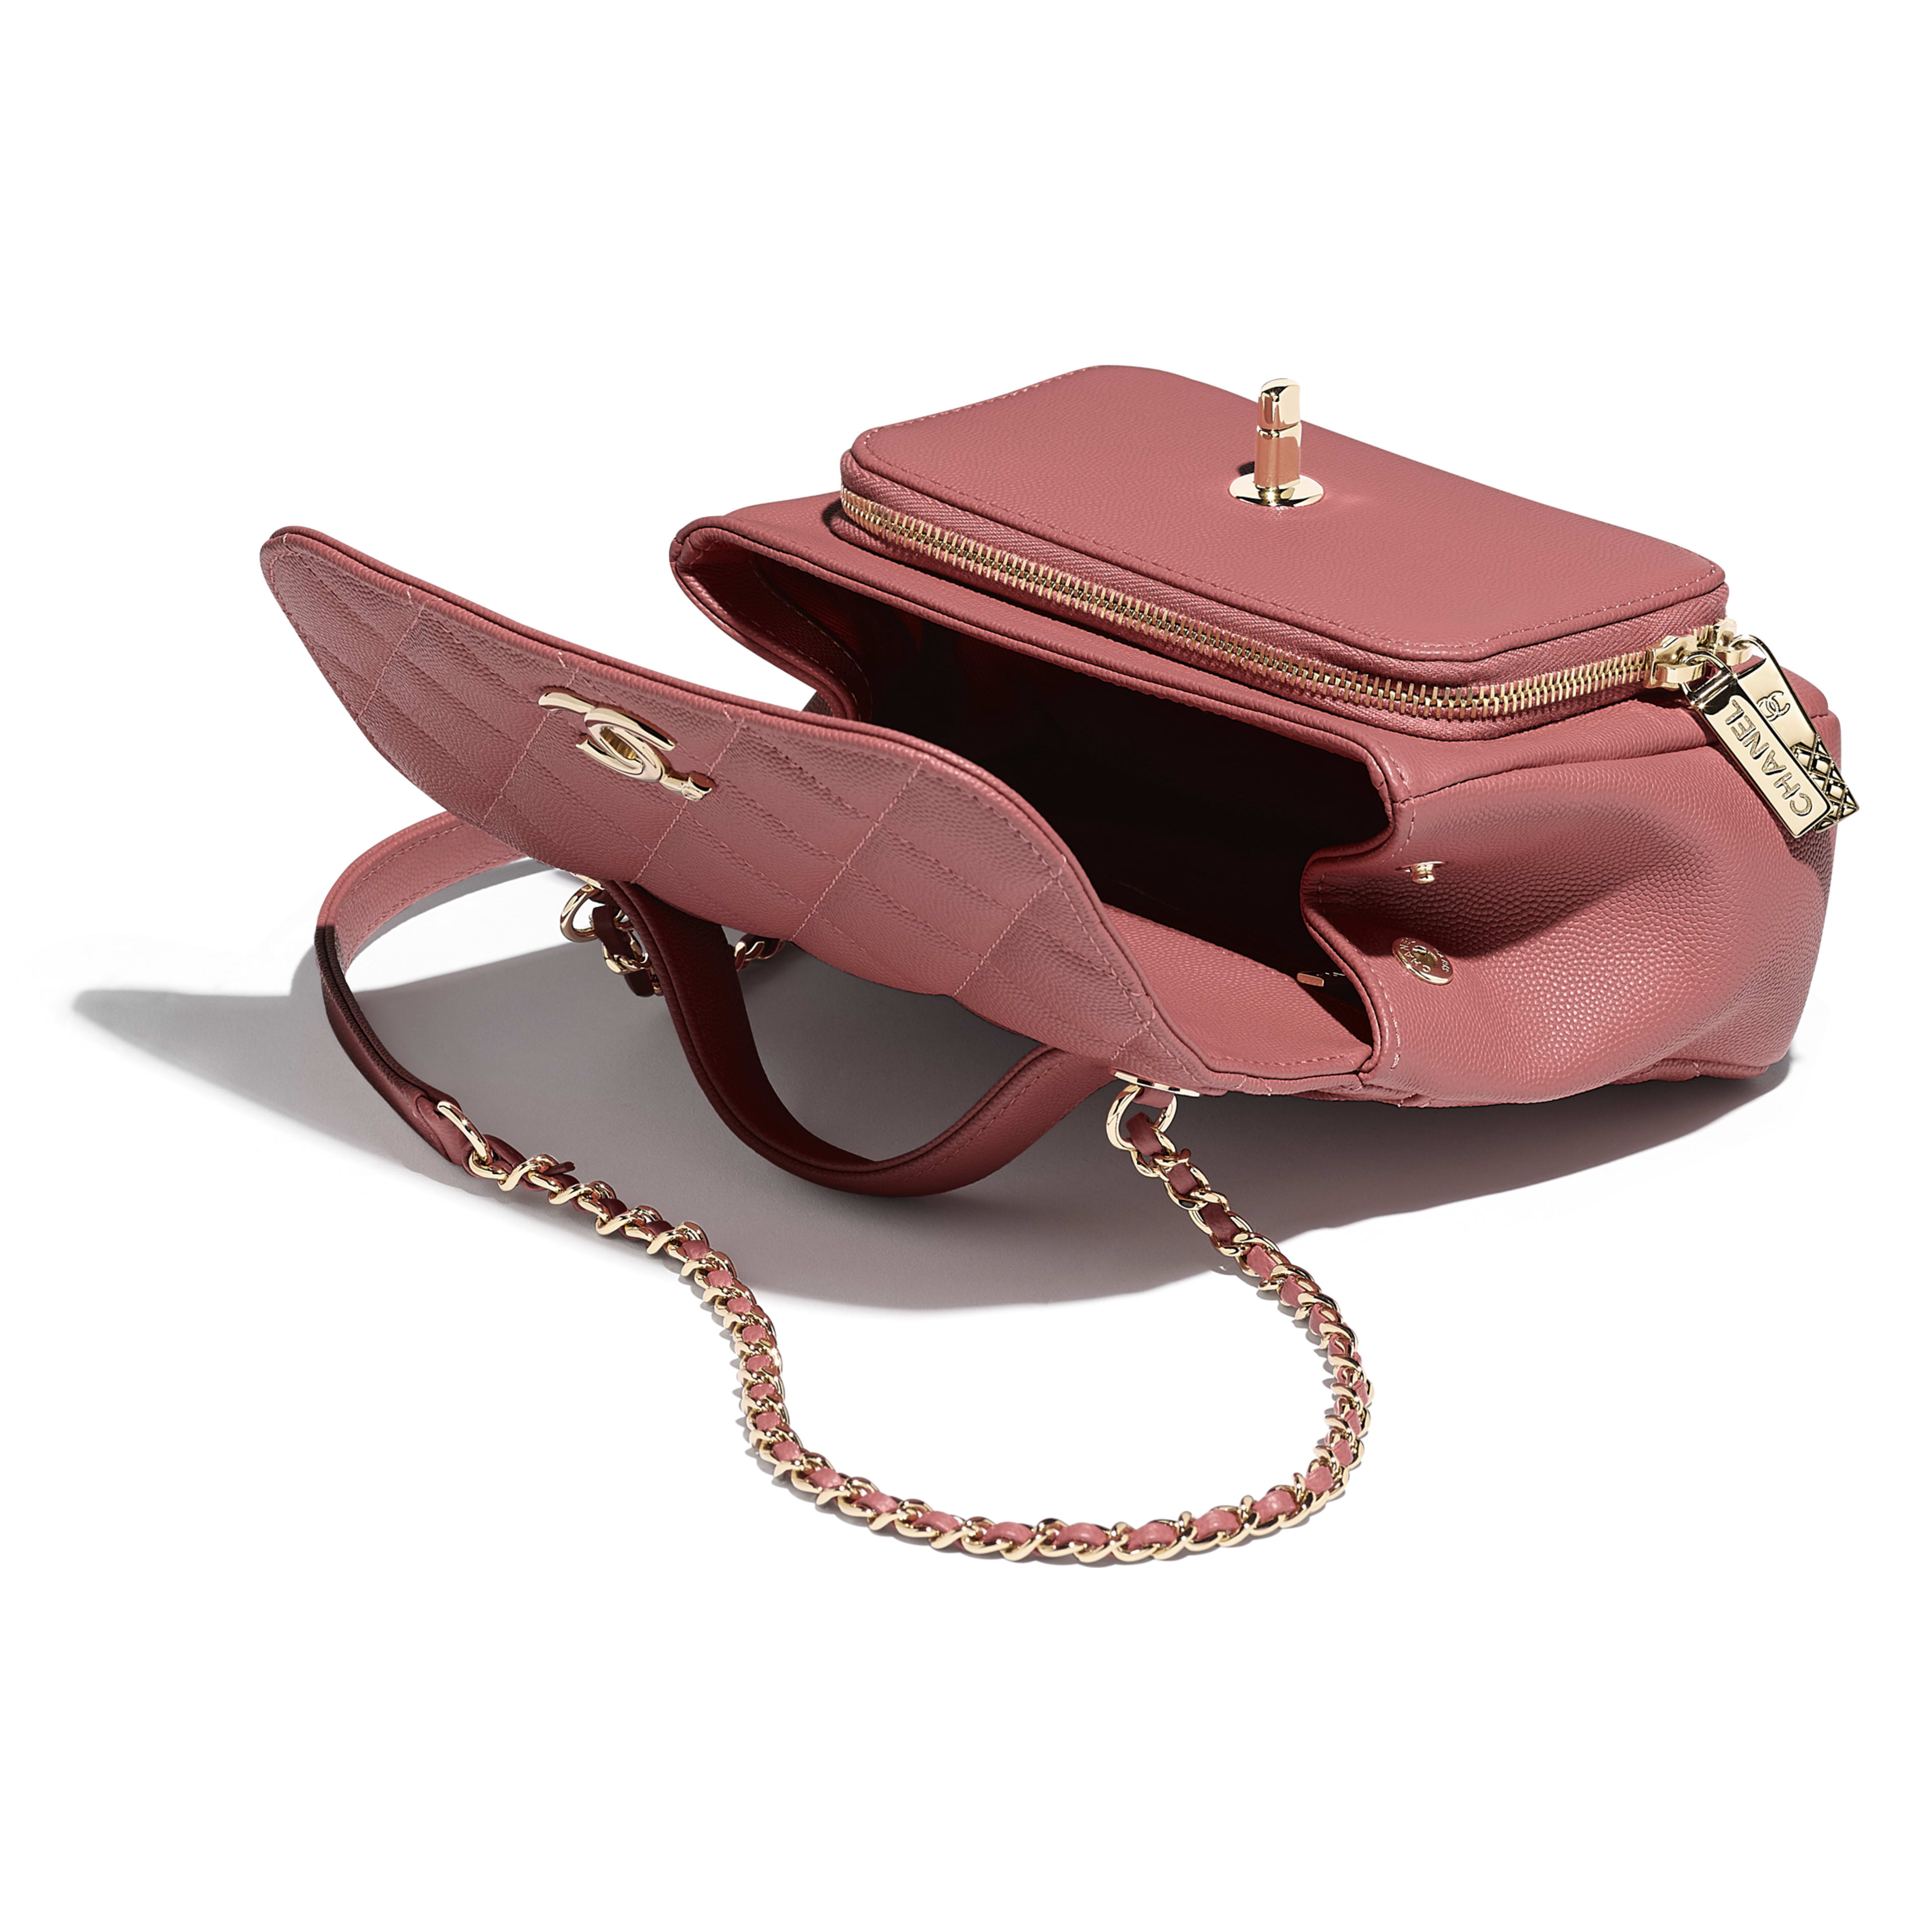 Flap Bag with Top Handle - Pink - Grained Calfskin & Gold-Tone Metal - Other view - see full sized version